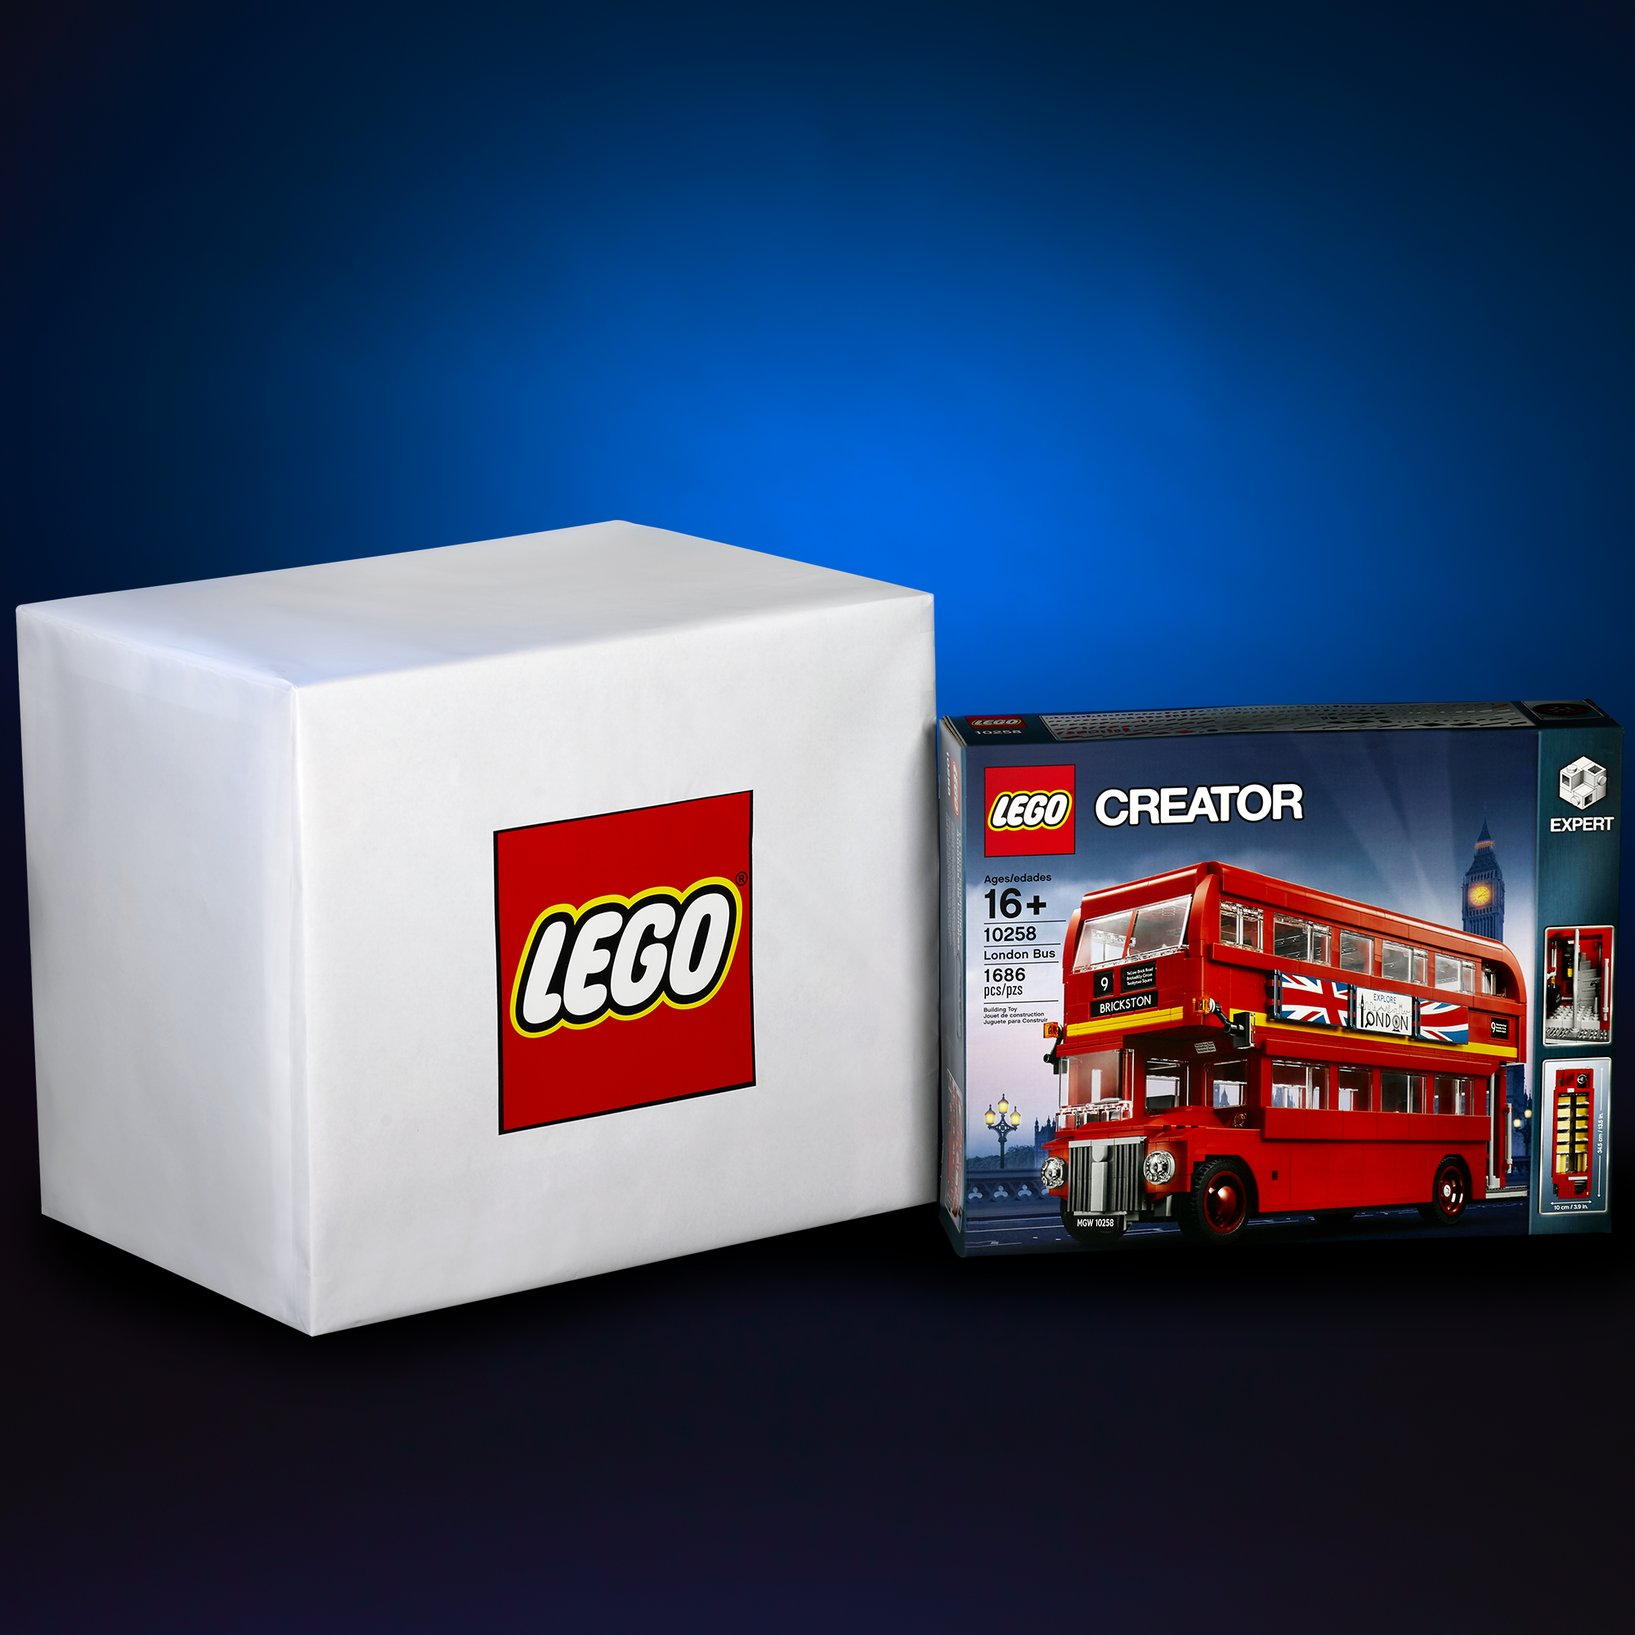 Teaser #1 - The London Bus comes in a box that is over 20,000 cm³ but something BIGGER is coming... 4.86 times bigger, to be exact! -LEGO Group [August 15, 2017]